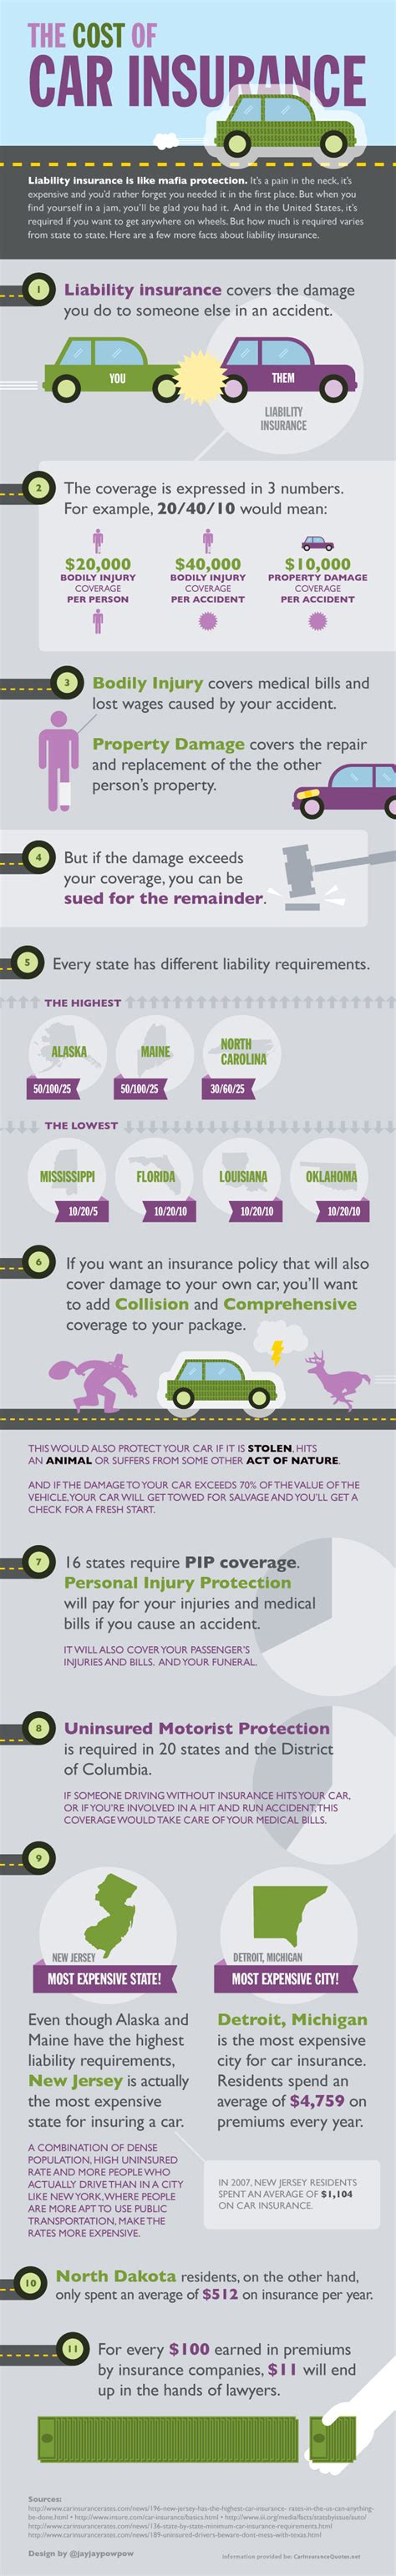 Cost of Car Insurance   CarInsuranceQuotes.net